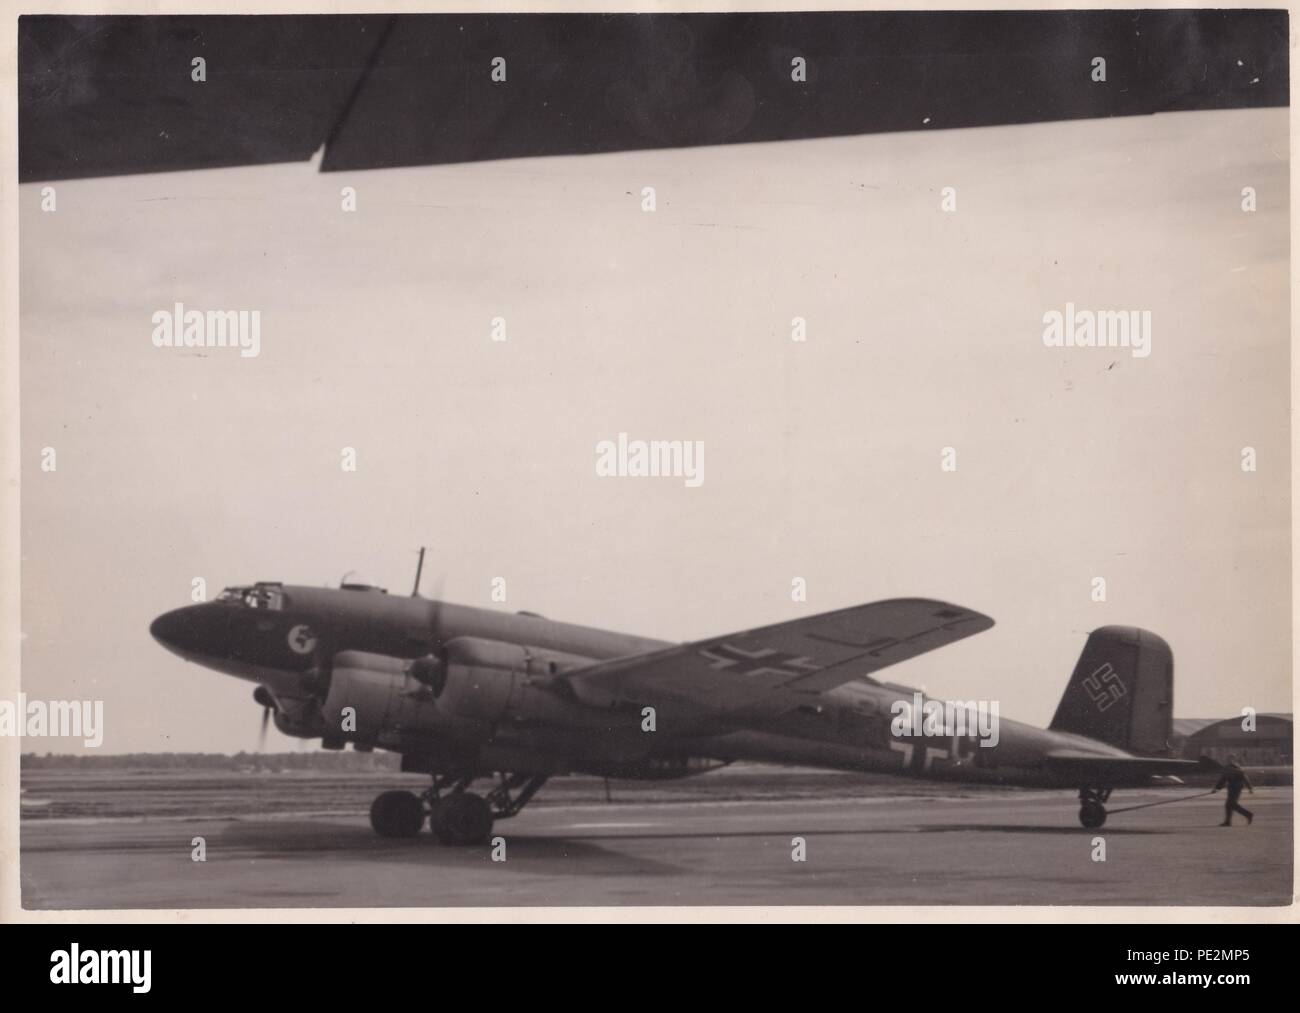 Image from the photo album of Oberfeldwebel Karl Gendner of 1. Staffel, Kampfgeschwader 40: Focke Wulf Fw 200 Condor F8+CL of 3./KG 40, running up its engines at Bordeaux in March 1941. - Stock Image